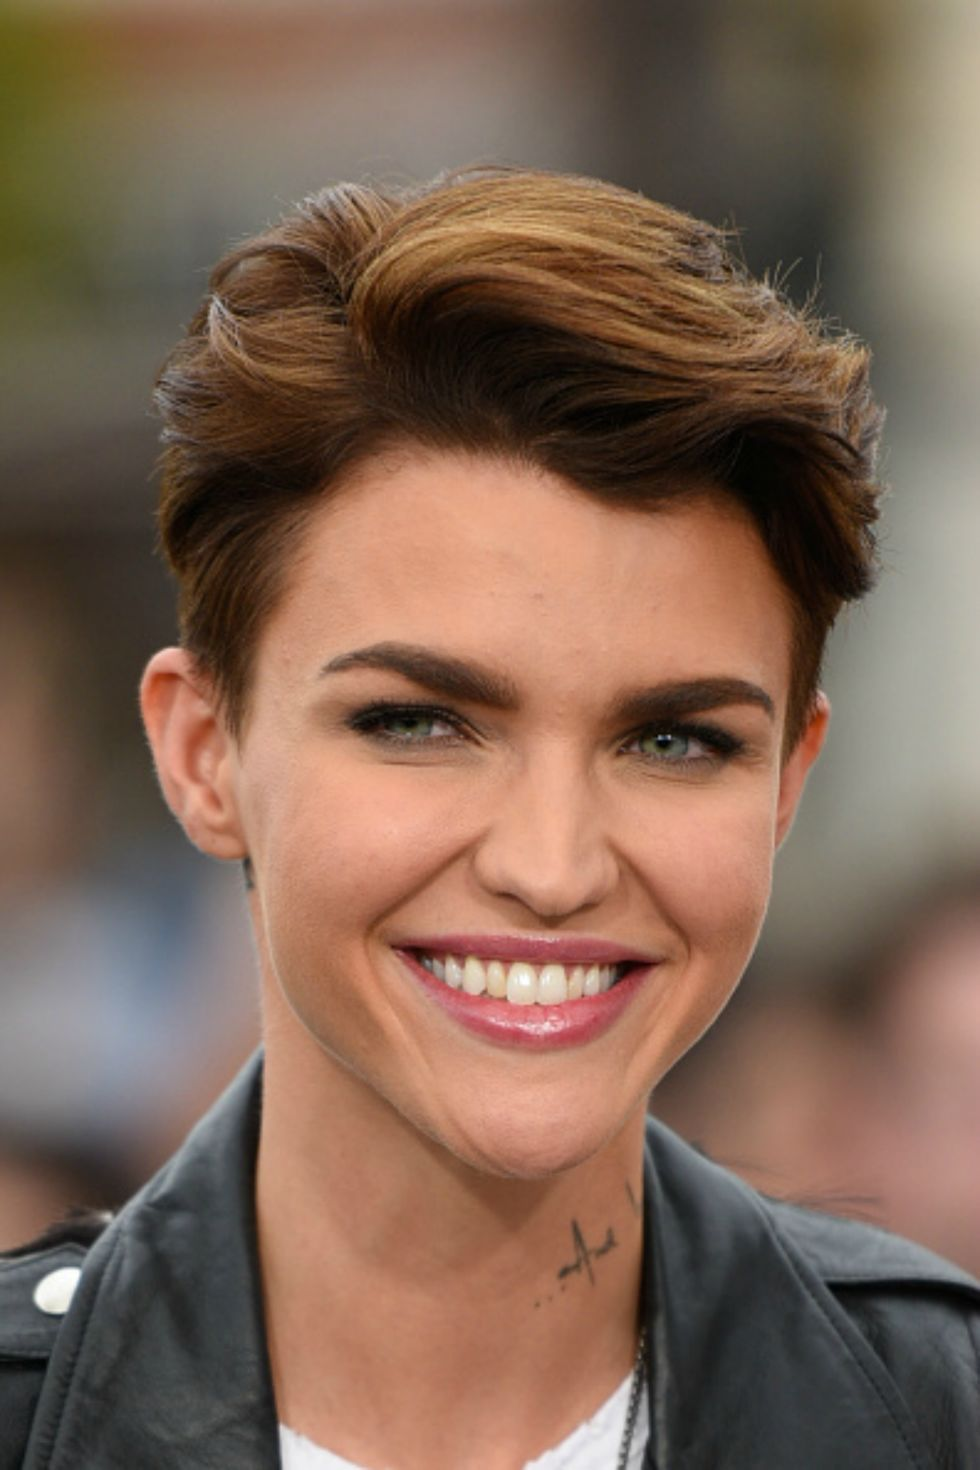 crazy-cute short hairstyles